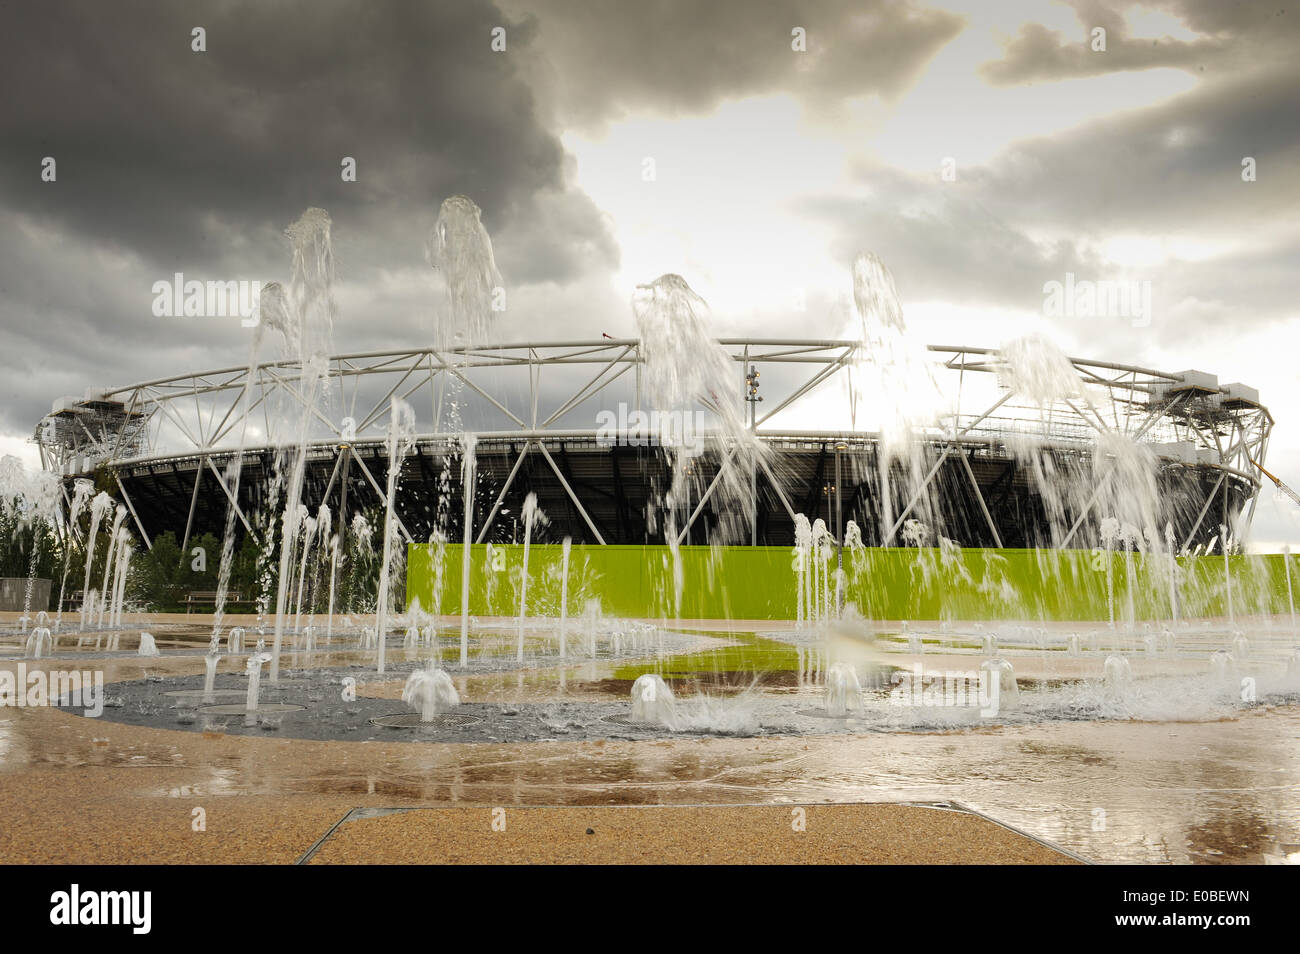 a general view of the Olympic Stadium inside the Queen Elizabeth Olympic Park in Stratford, London - Stock Image